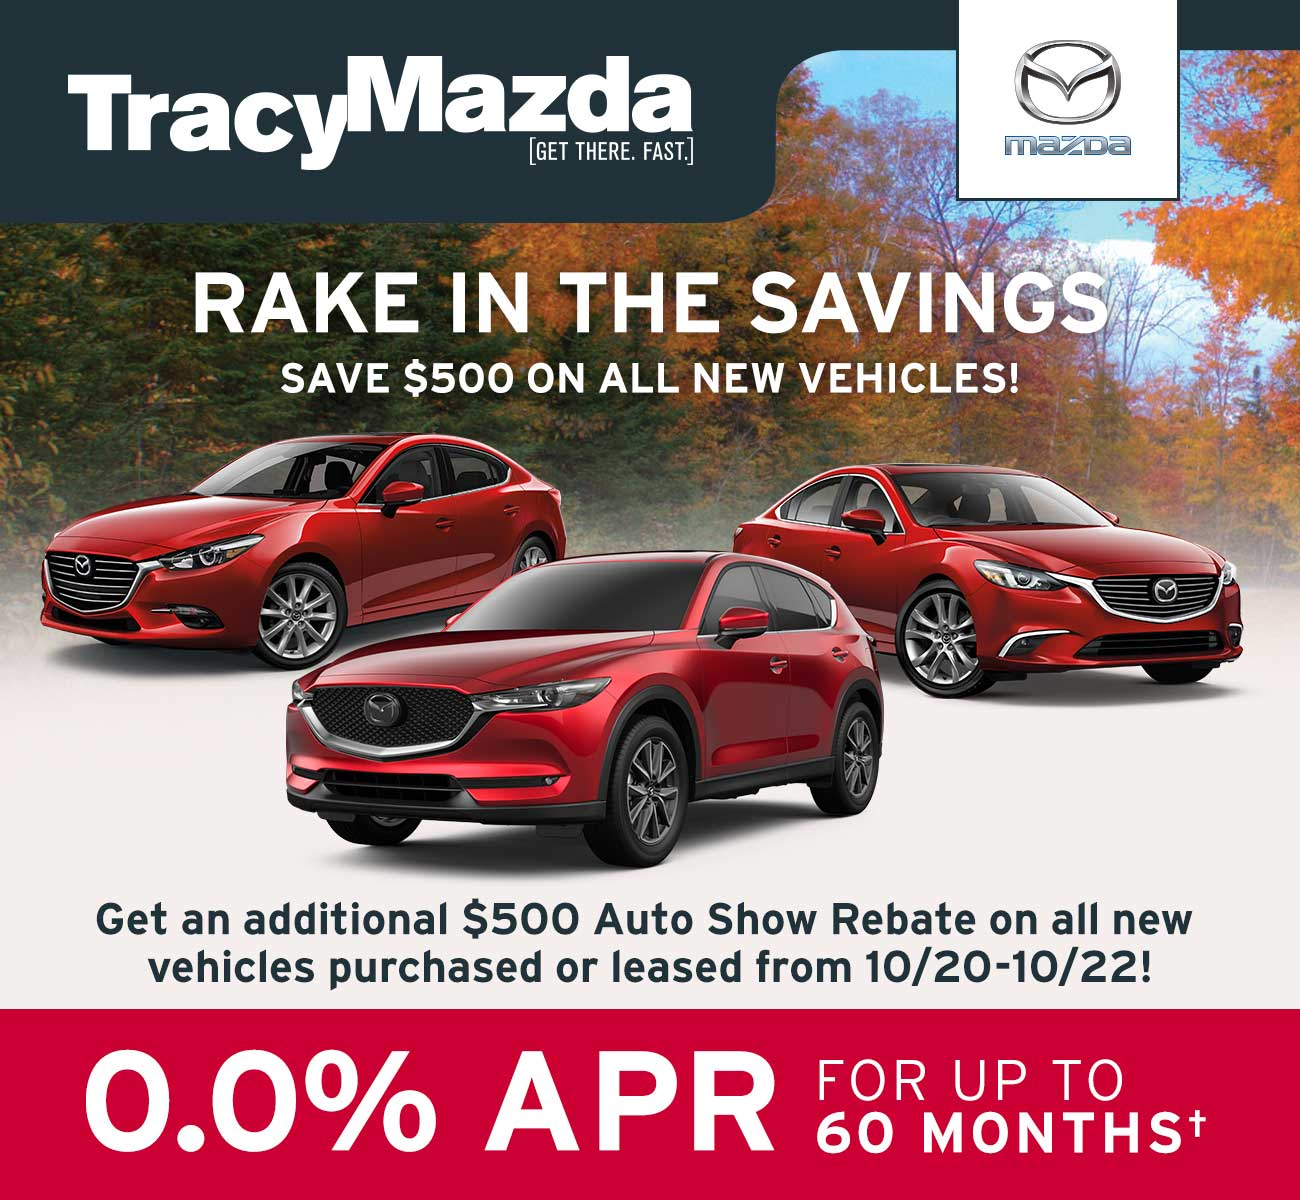 Rake In The Savings - Save $500 On all new vehicles! 0.0% APR for up to 60 months.